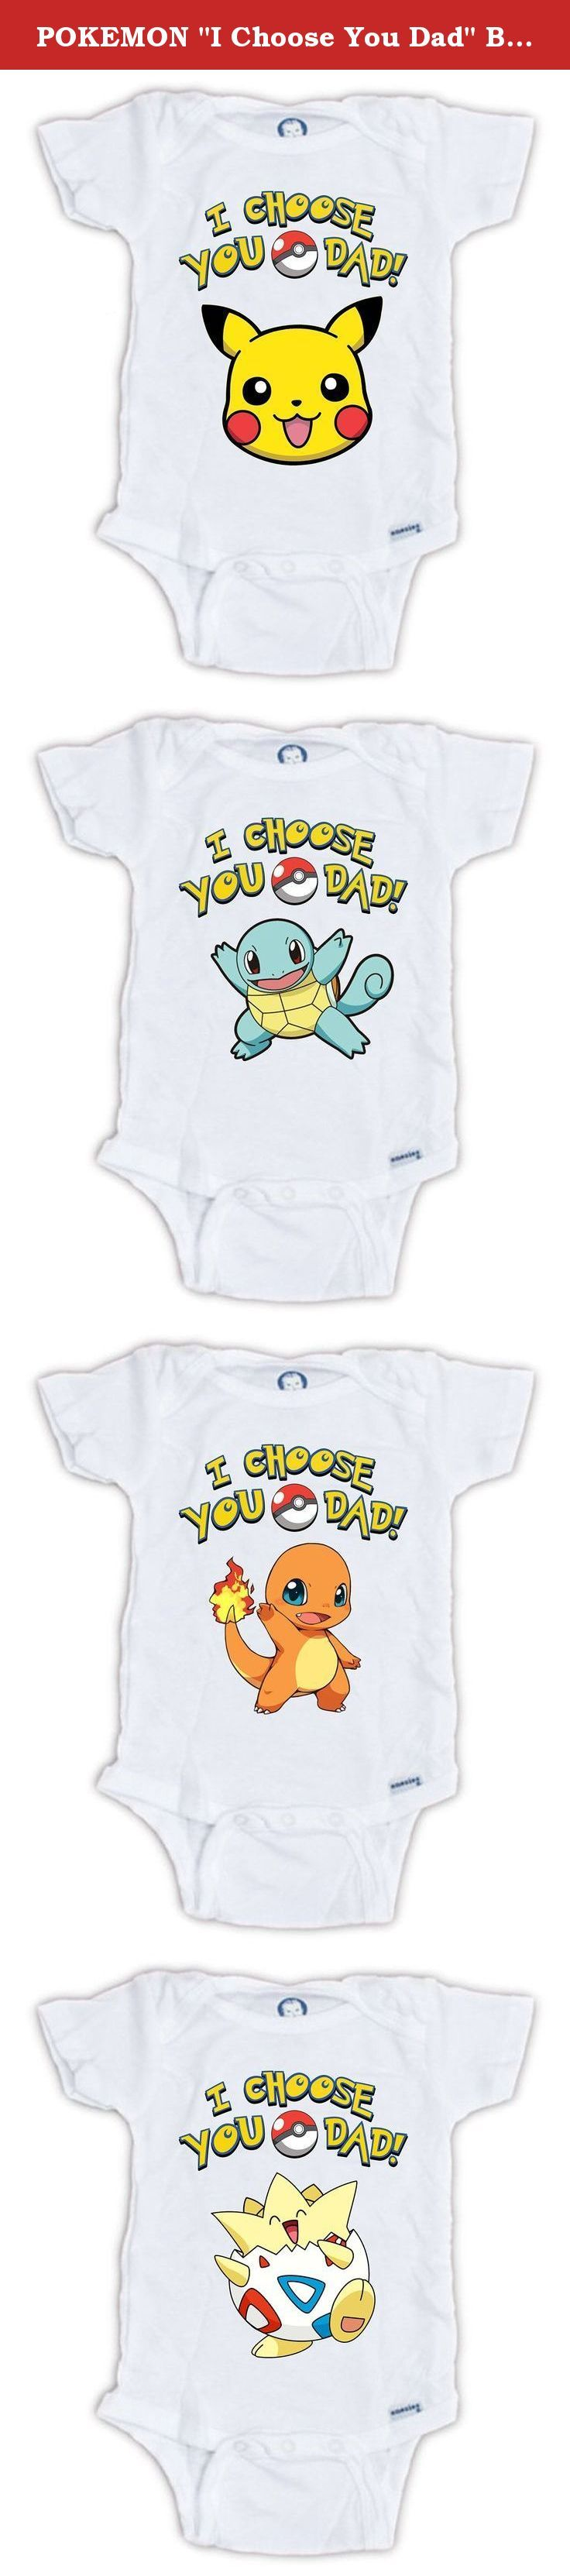 """POKEMON """"I Choose You Dad"""" Baby Onesie Bodysuit (3-6 Months). Whether You Are Looking For The Perfect Onesie, A Funny Baby Gift, Boutique Quality Newborn Clothes, Or The Softest Bodysuit, Our Store Has You And That New Baby Girl Or Baby Boy In Your Life Covered!."""